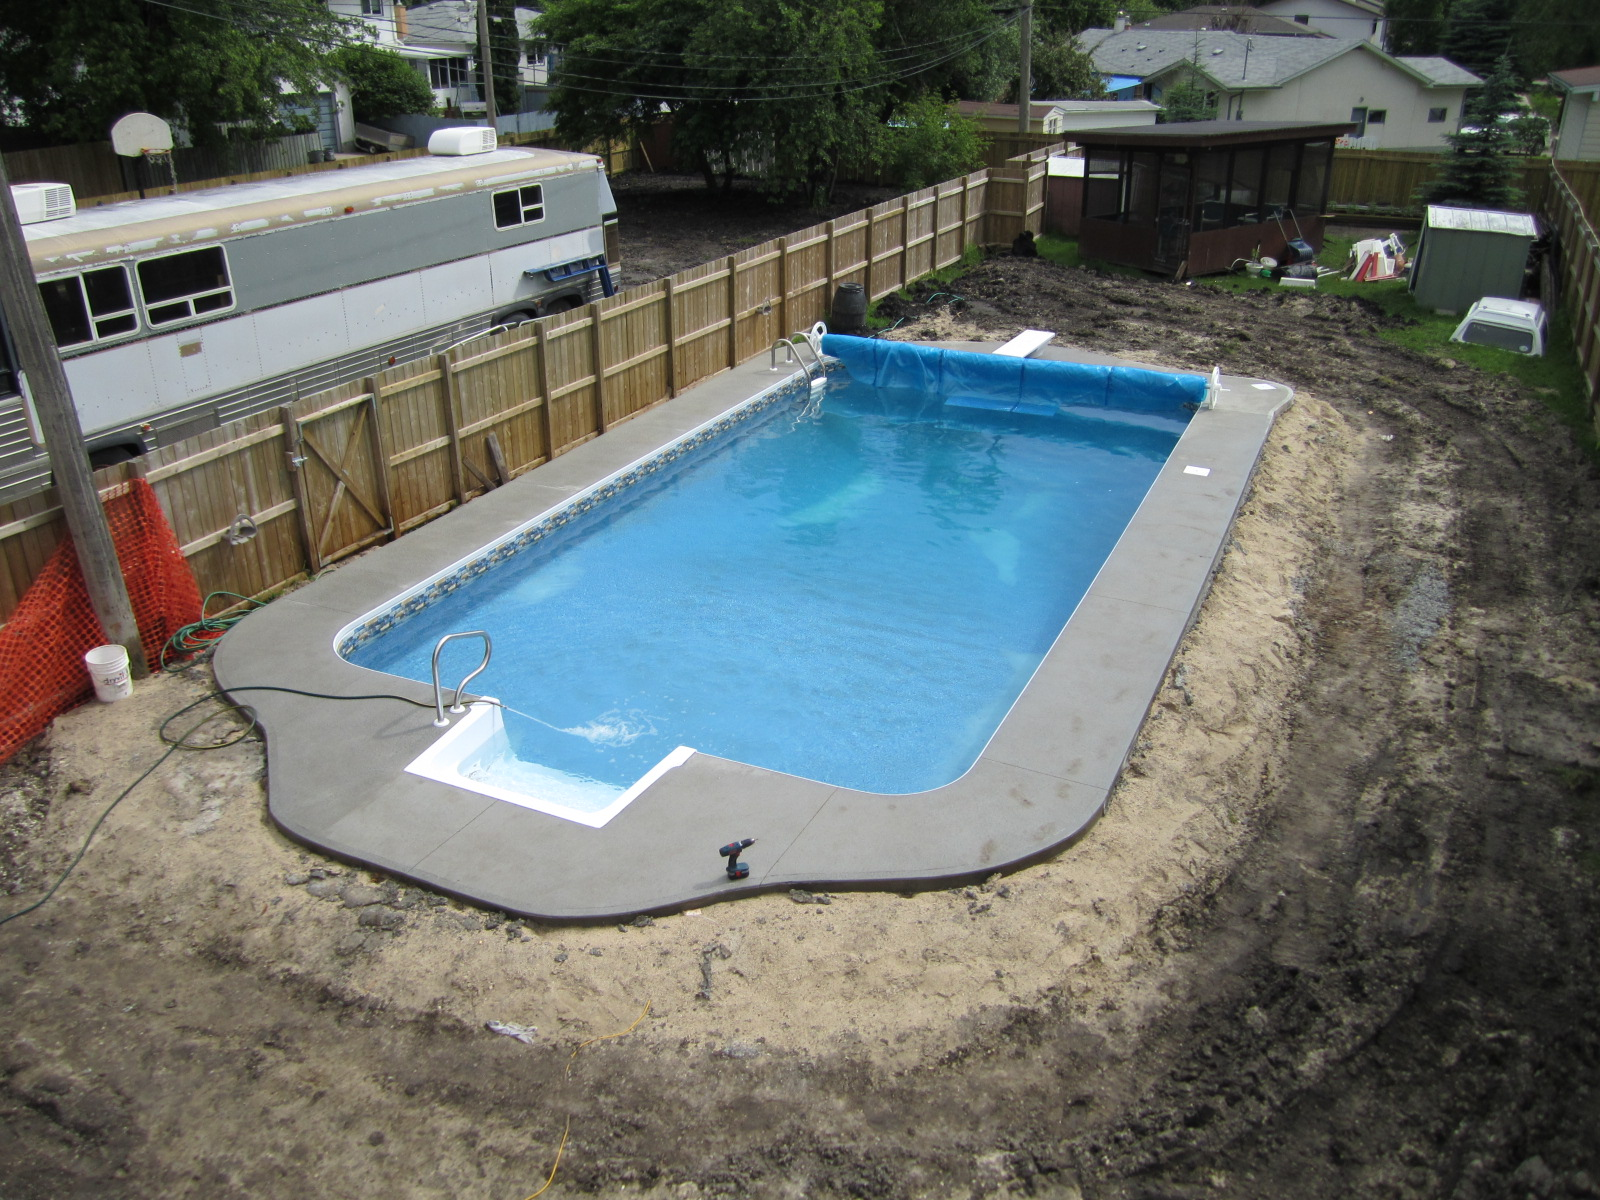 Pictures Of 16x32 Inground Pool Joy Studio Design